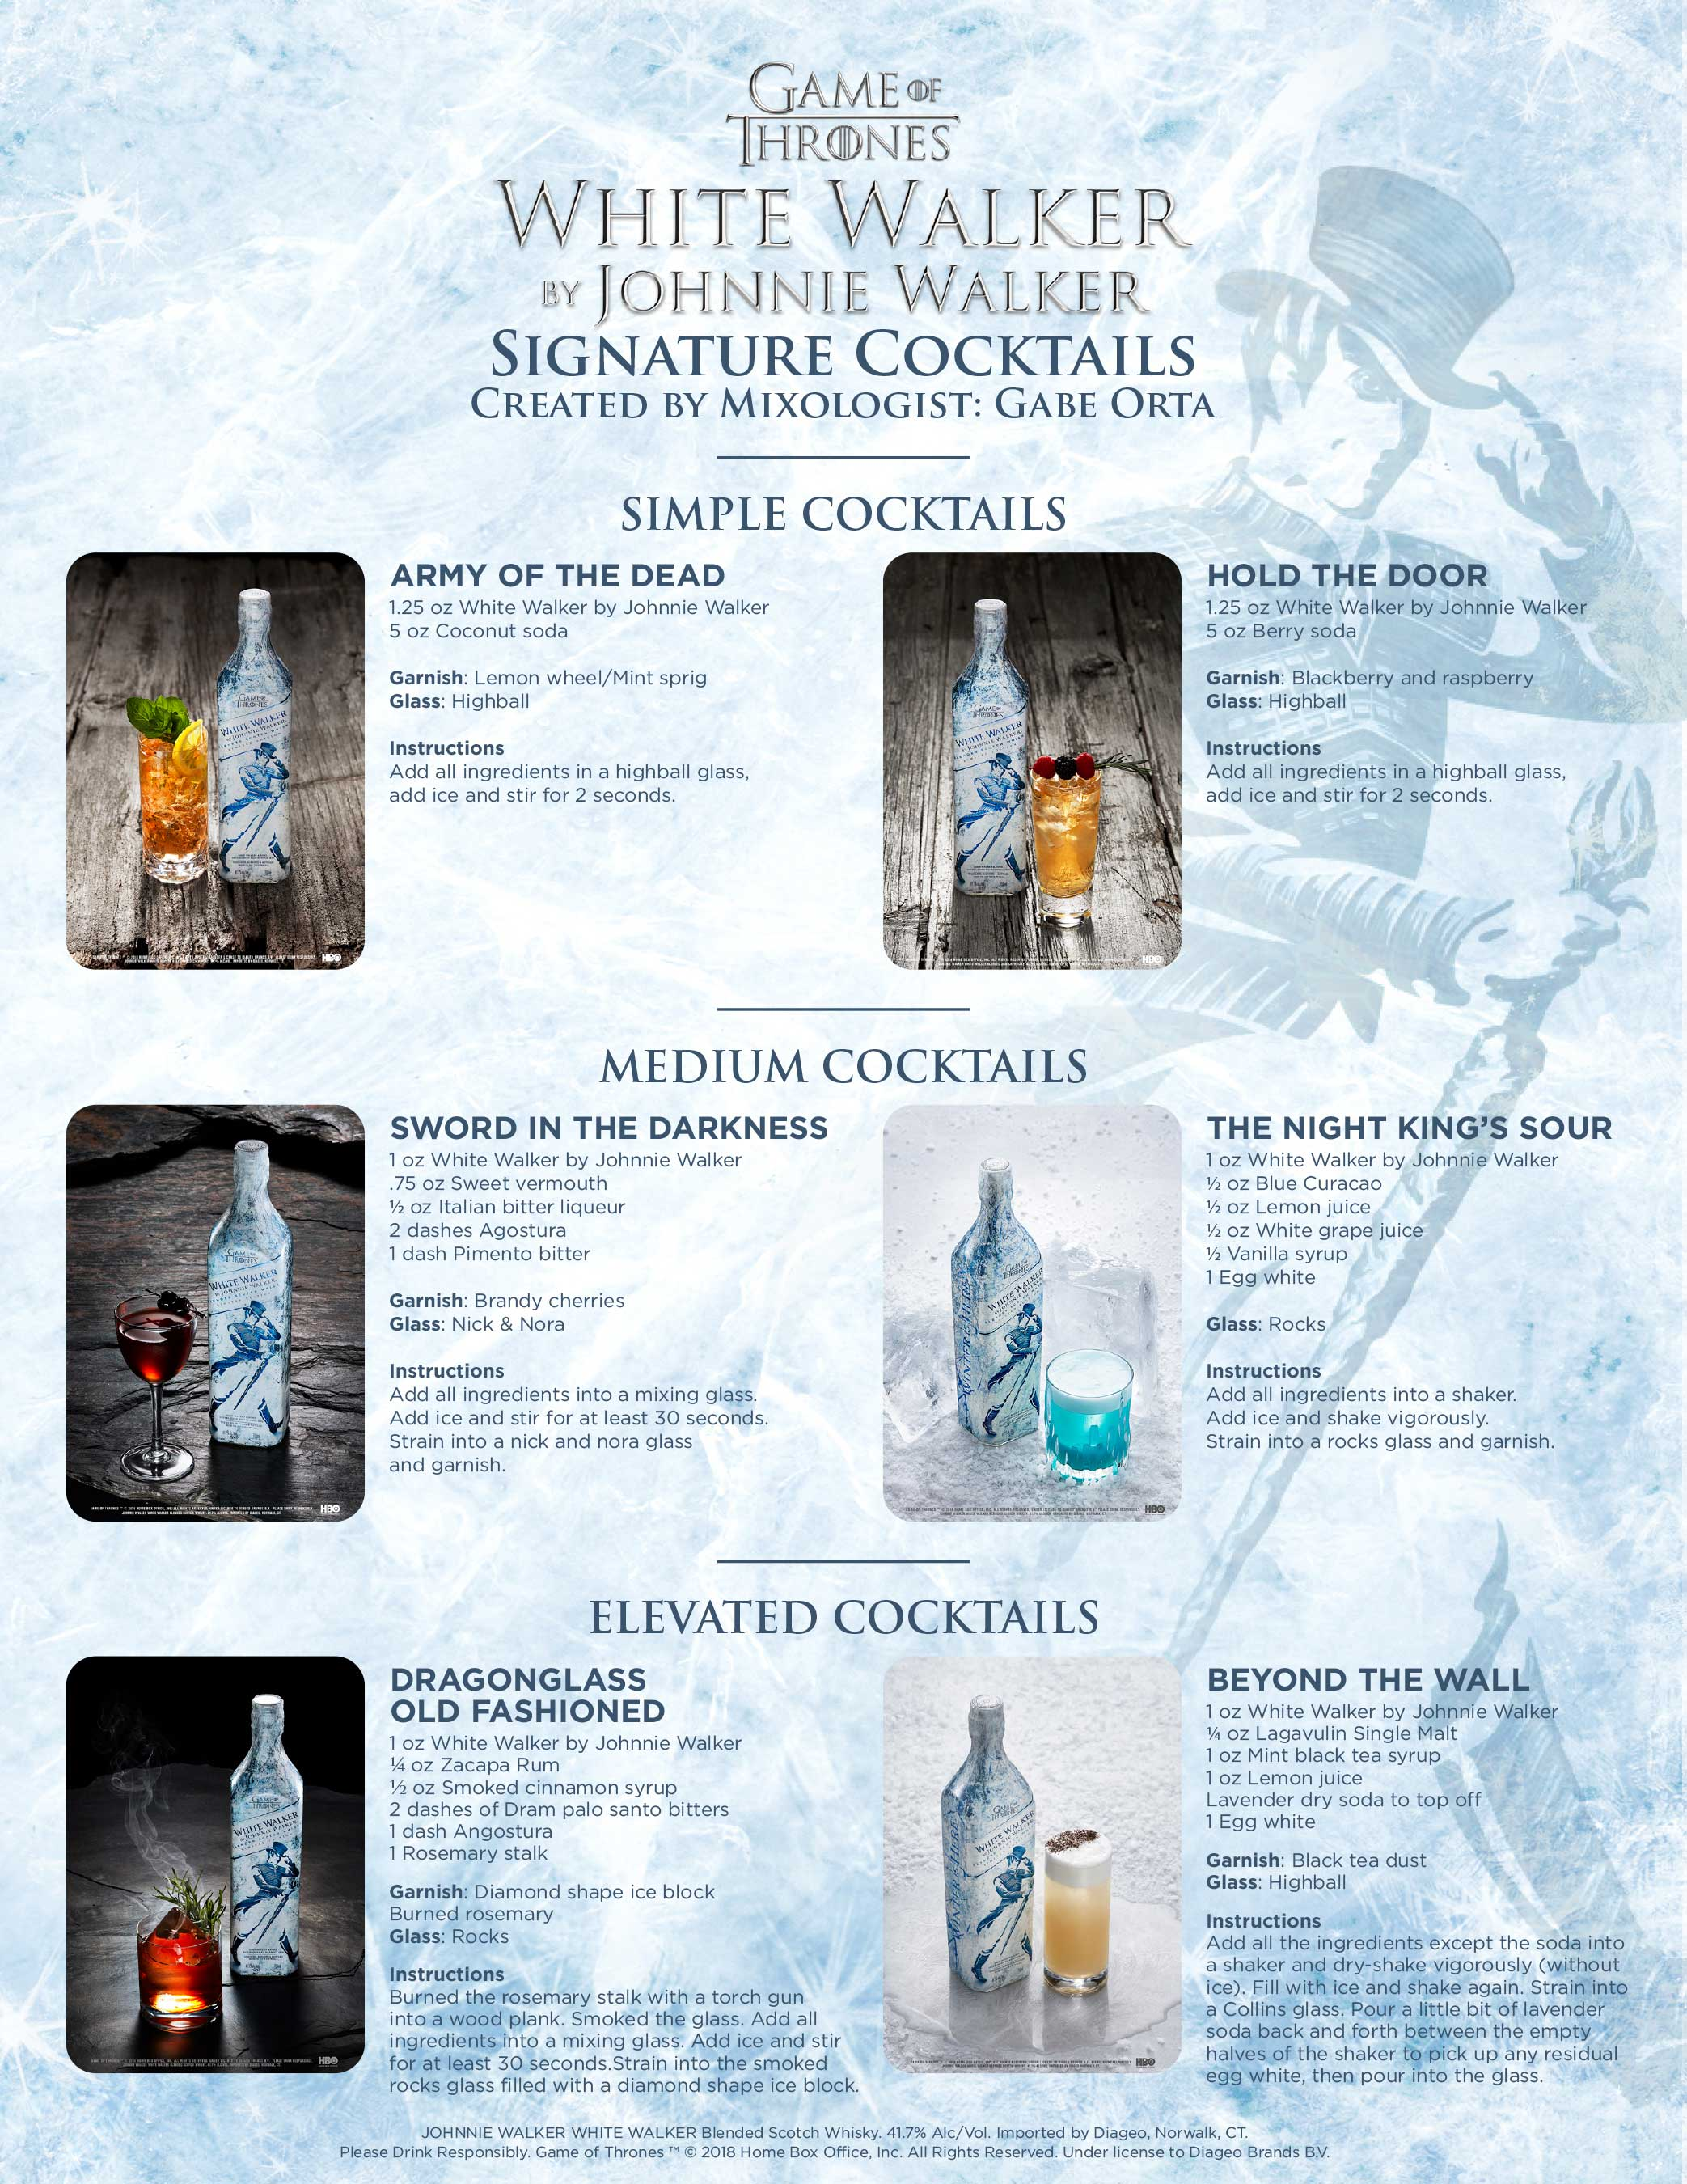 Specialty White Walker by Johnnie Walker cocktail recipes created by Mixologist Gabe Orta